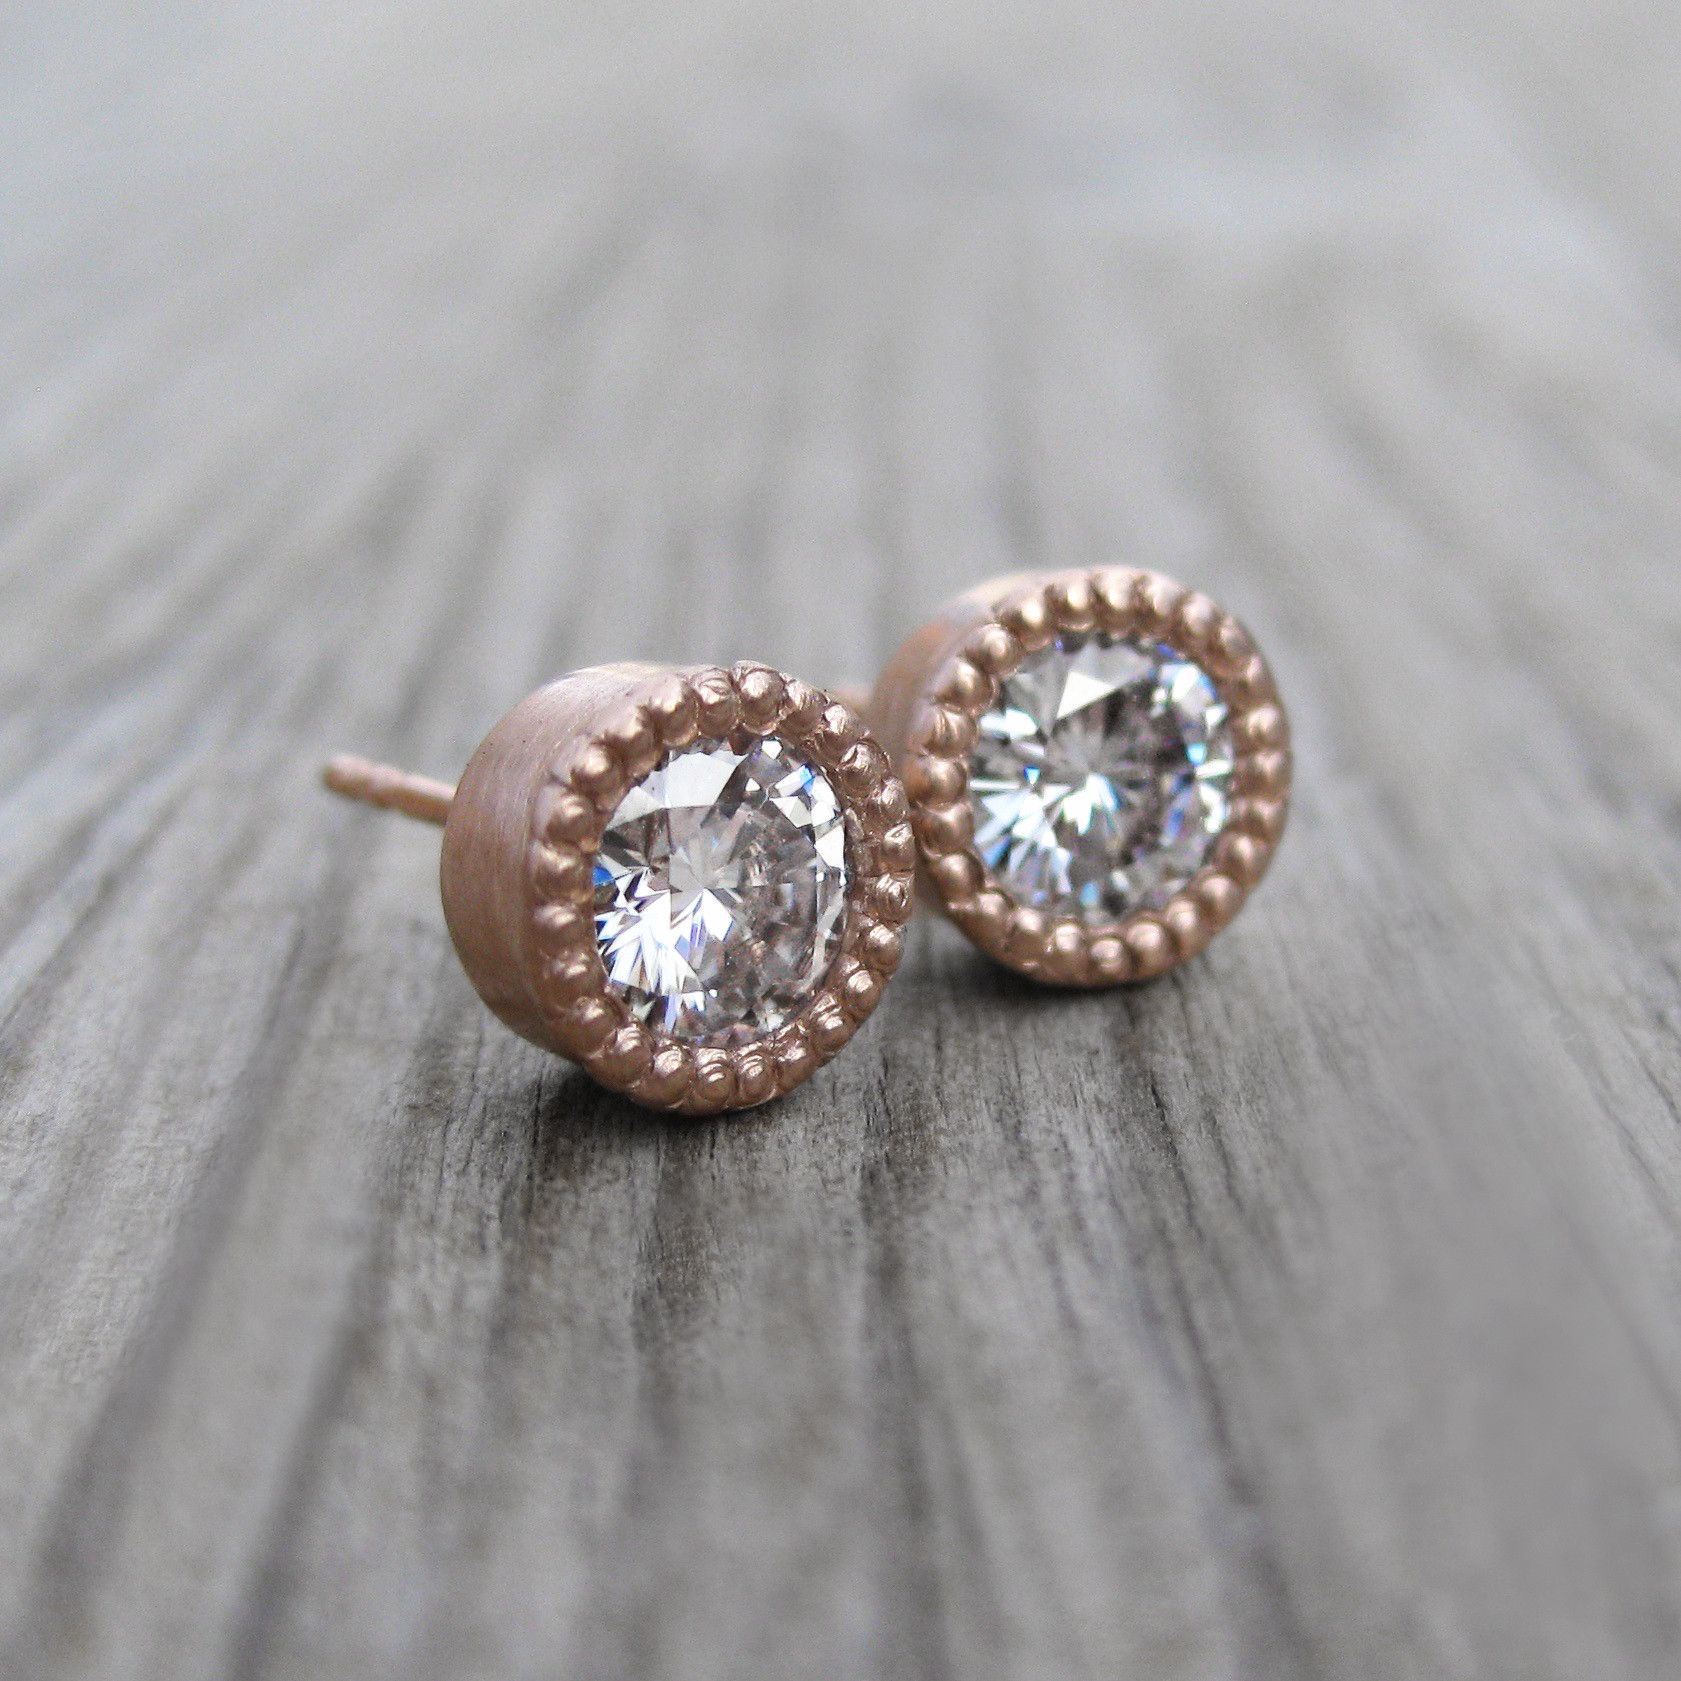 studs poshclassymom and diamond charles colvard day gift valentines moissanite earrings stud ideas